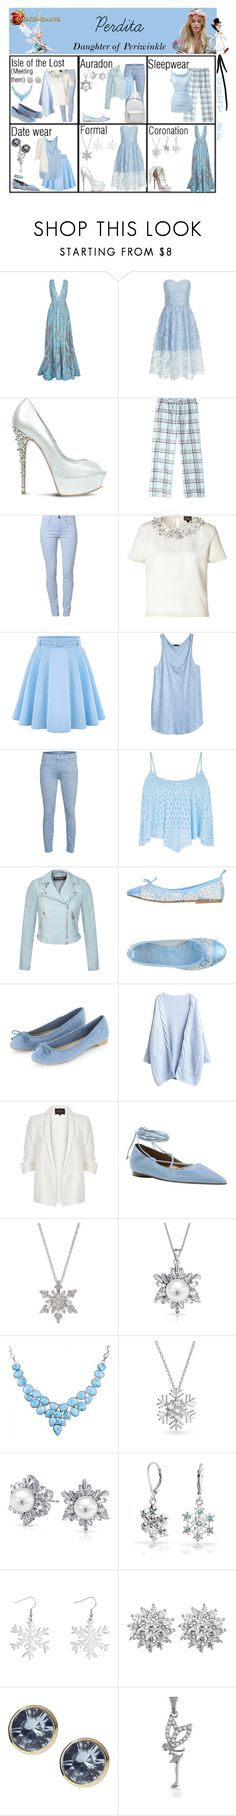 """Perdita. Daughter of Periwinkle. Next up: John Darling"" by elmoakepoke ❤ liked on Polyvore featuring Elie Saab, Tabitha Simmons, Chi Chi, Wedgwood, Soyaconcept, Giambattista Valli, H&M, Mother, Miss Selfridge and POPS by Versilia"